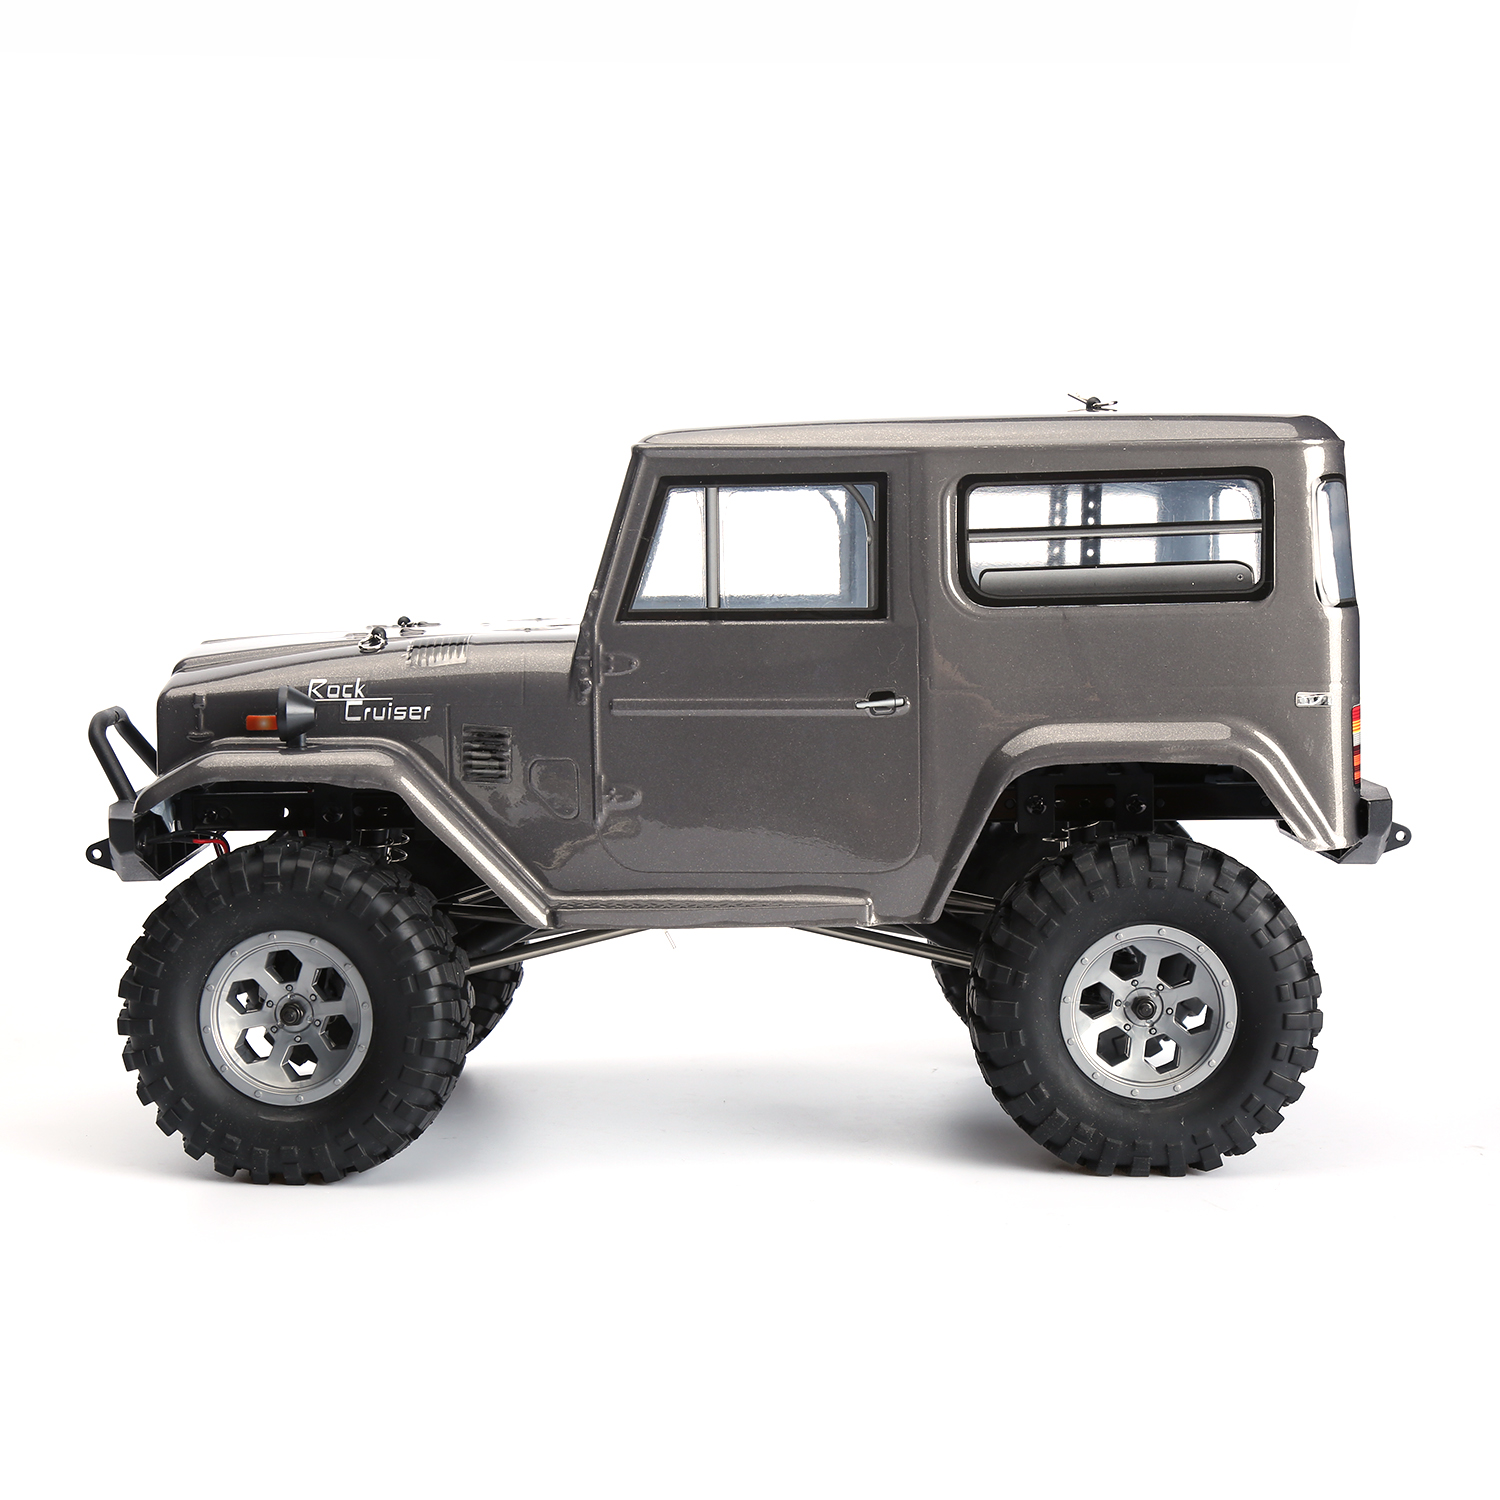 us rc car 1 10 scale electric 4wd off road rock crawler. Black Bedroom Furniture Sets. Home Design Ideas